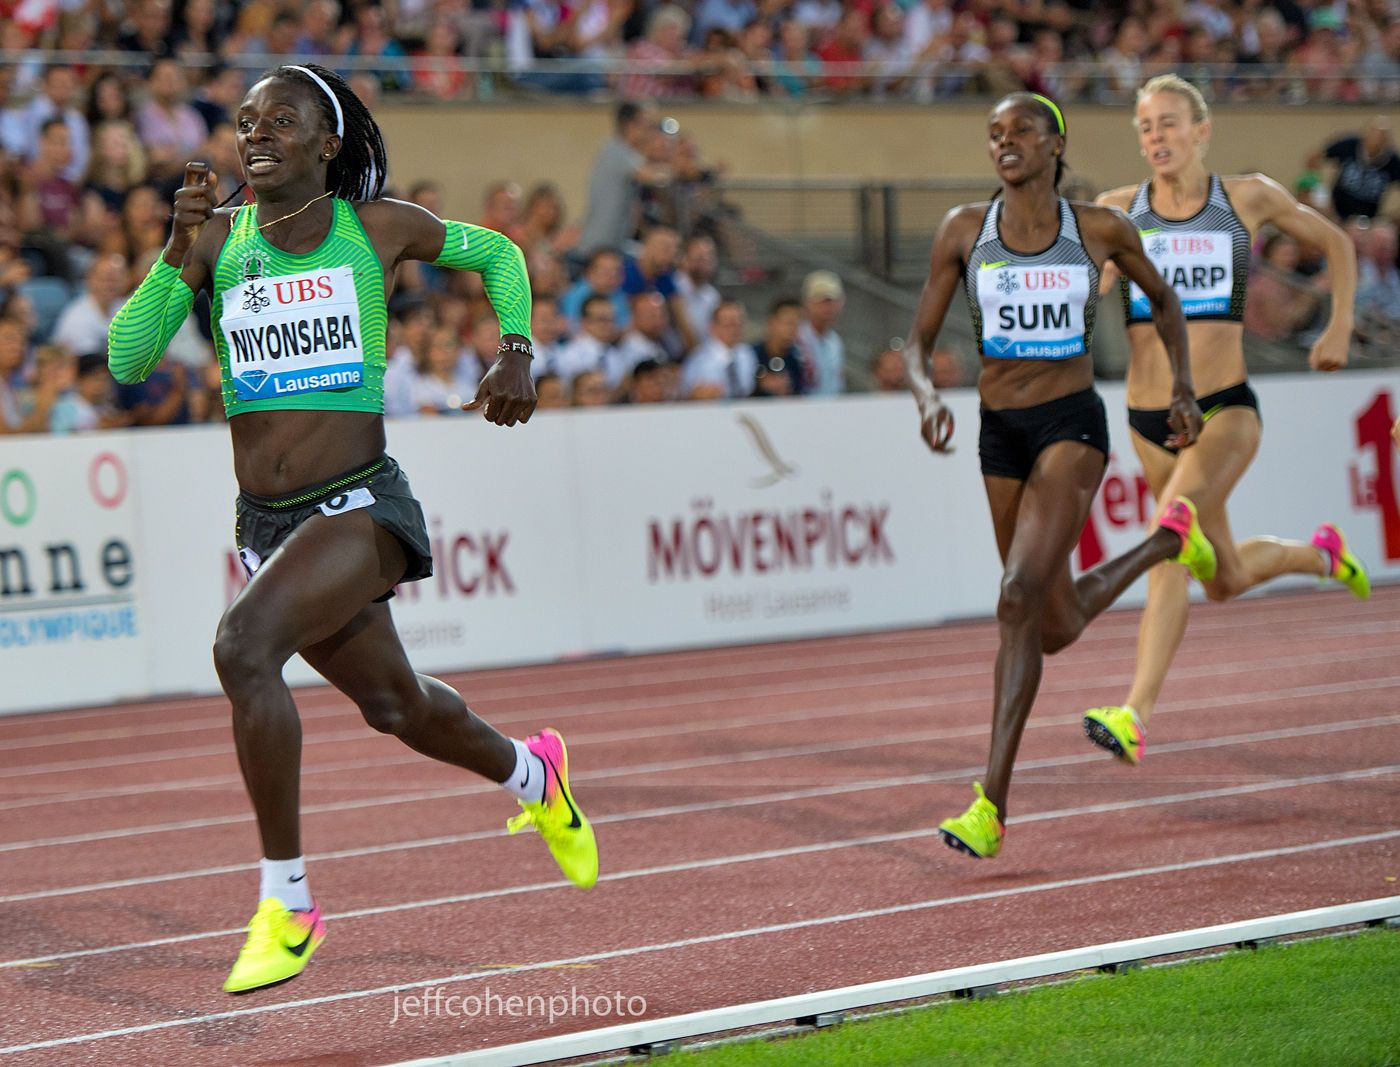 1r2016_athletissima_lausanne_niyonsaba_800mw_jeff_cohen_photo_1193_web.jpg